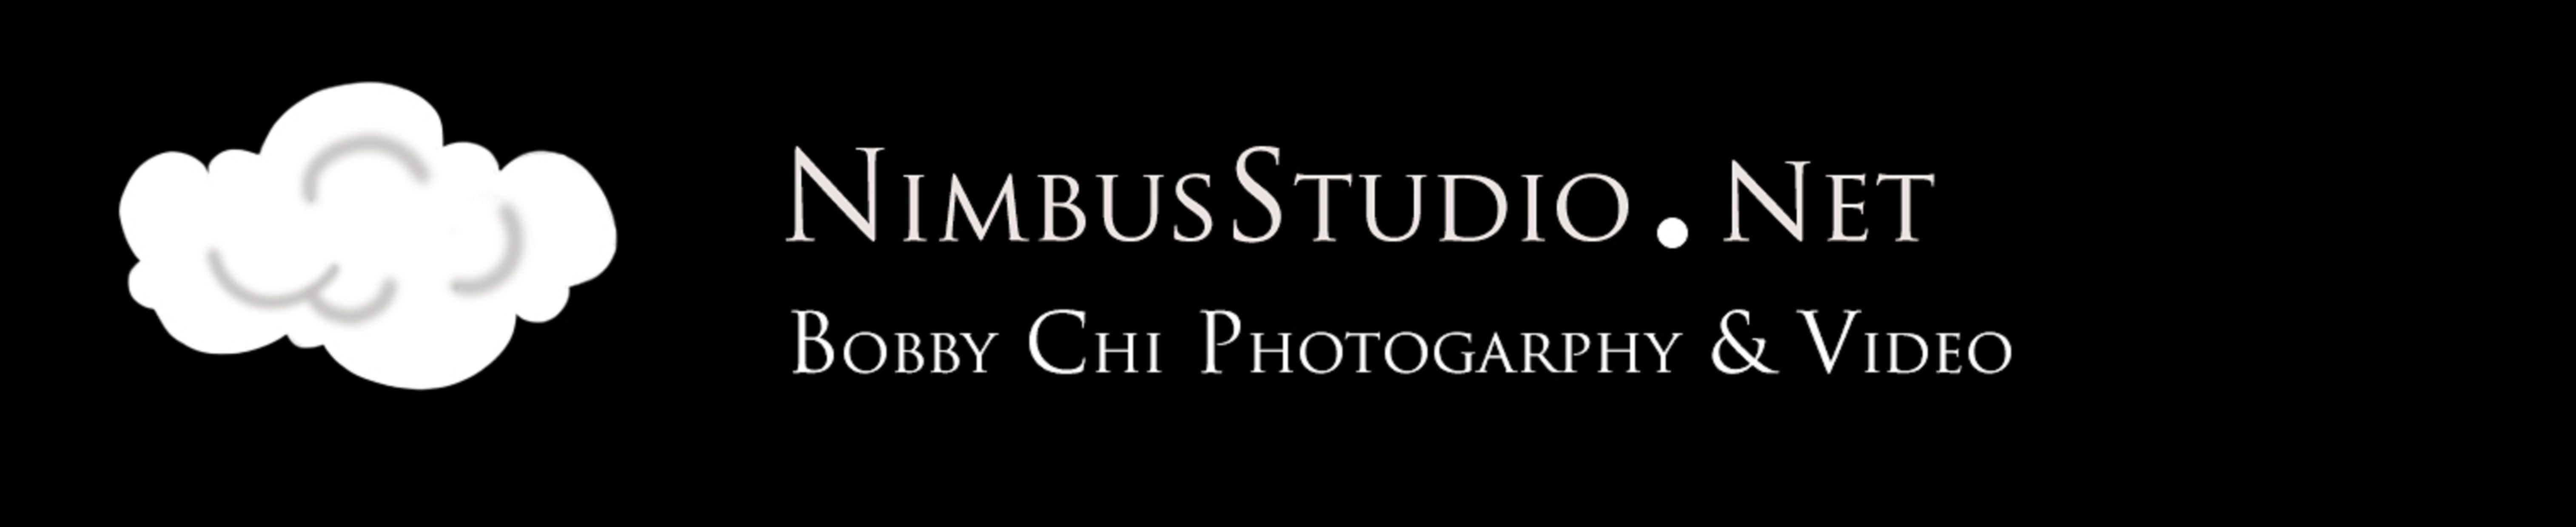 Nimbus Studio Bobby Chi Photography & Video